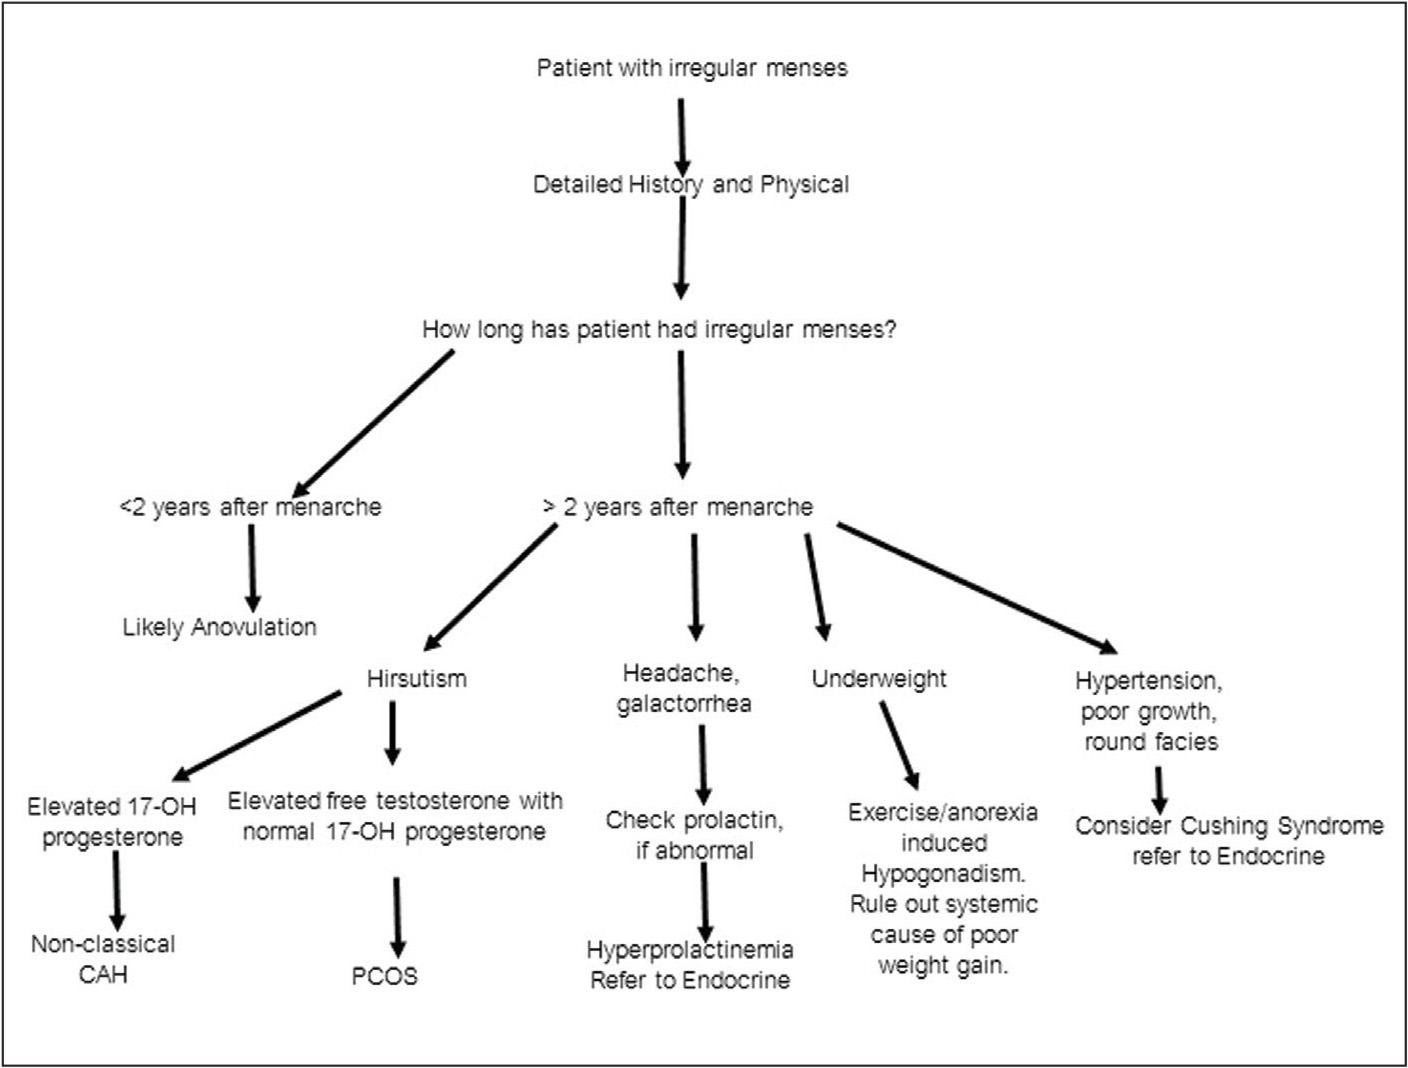 Flowsheet for evaluation of patients with irregular menstrual cycles.